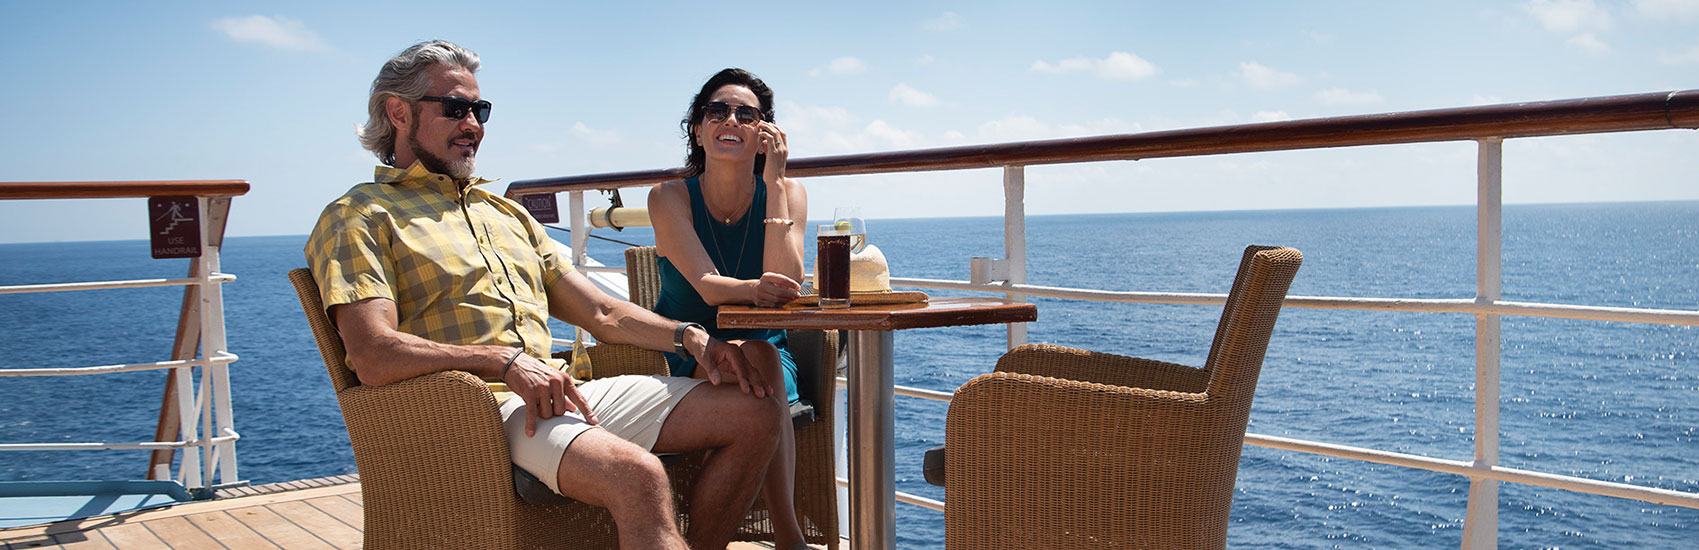 7 for 7 Offer from Windstar 1